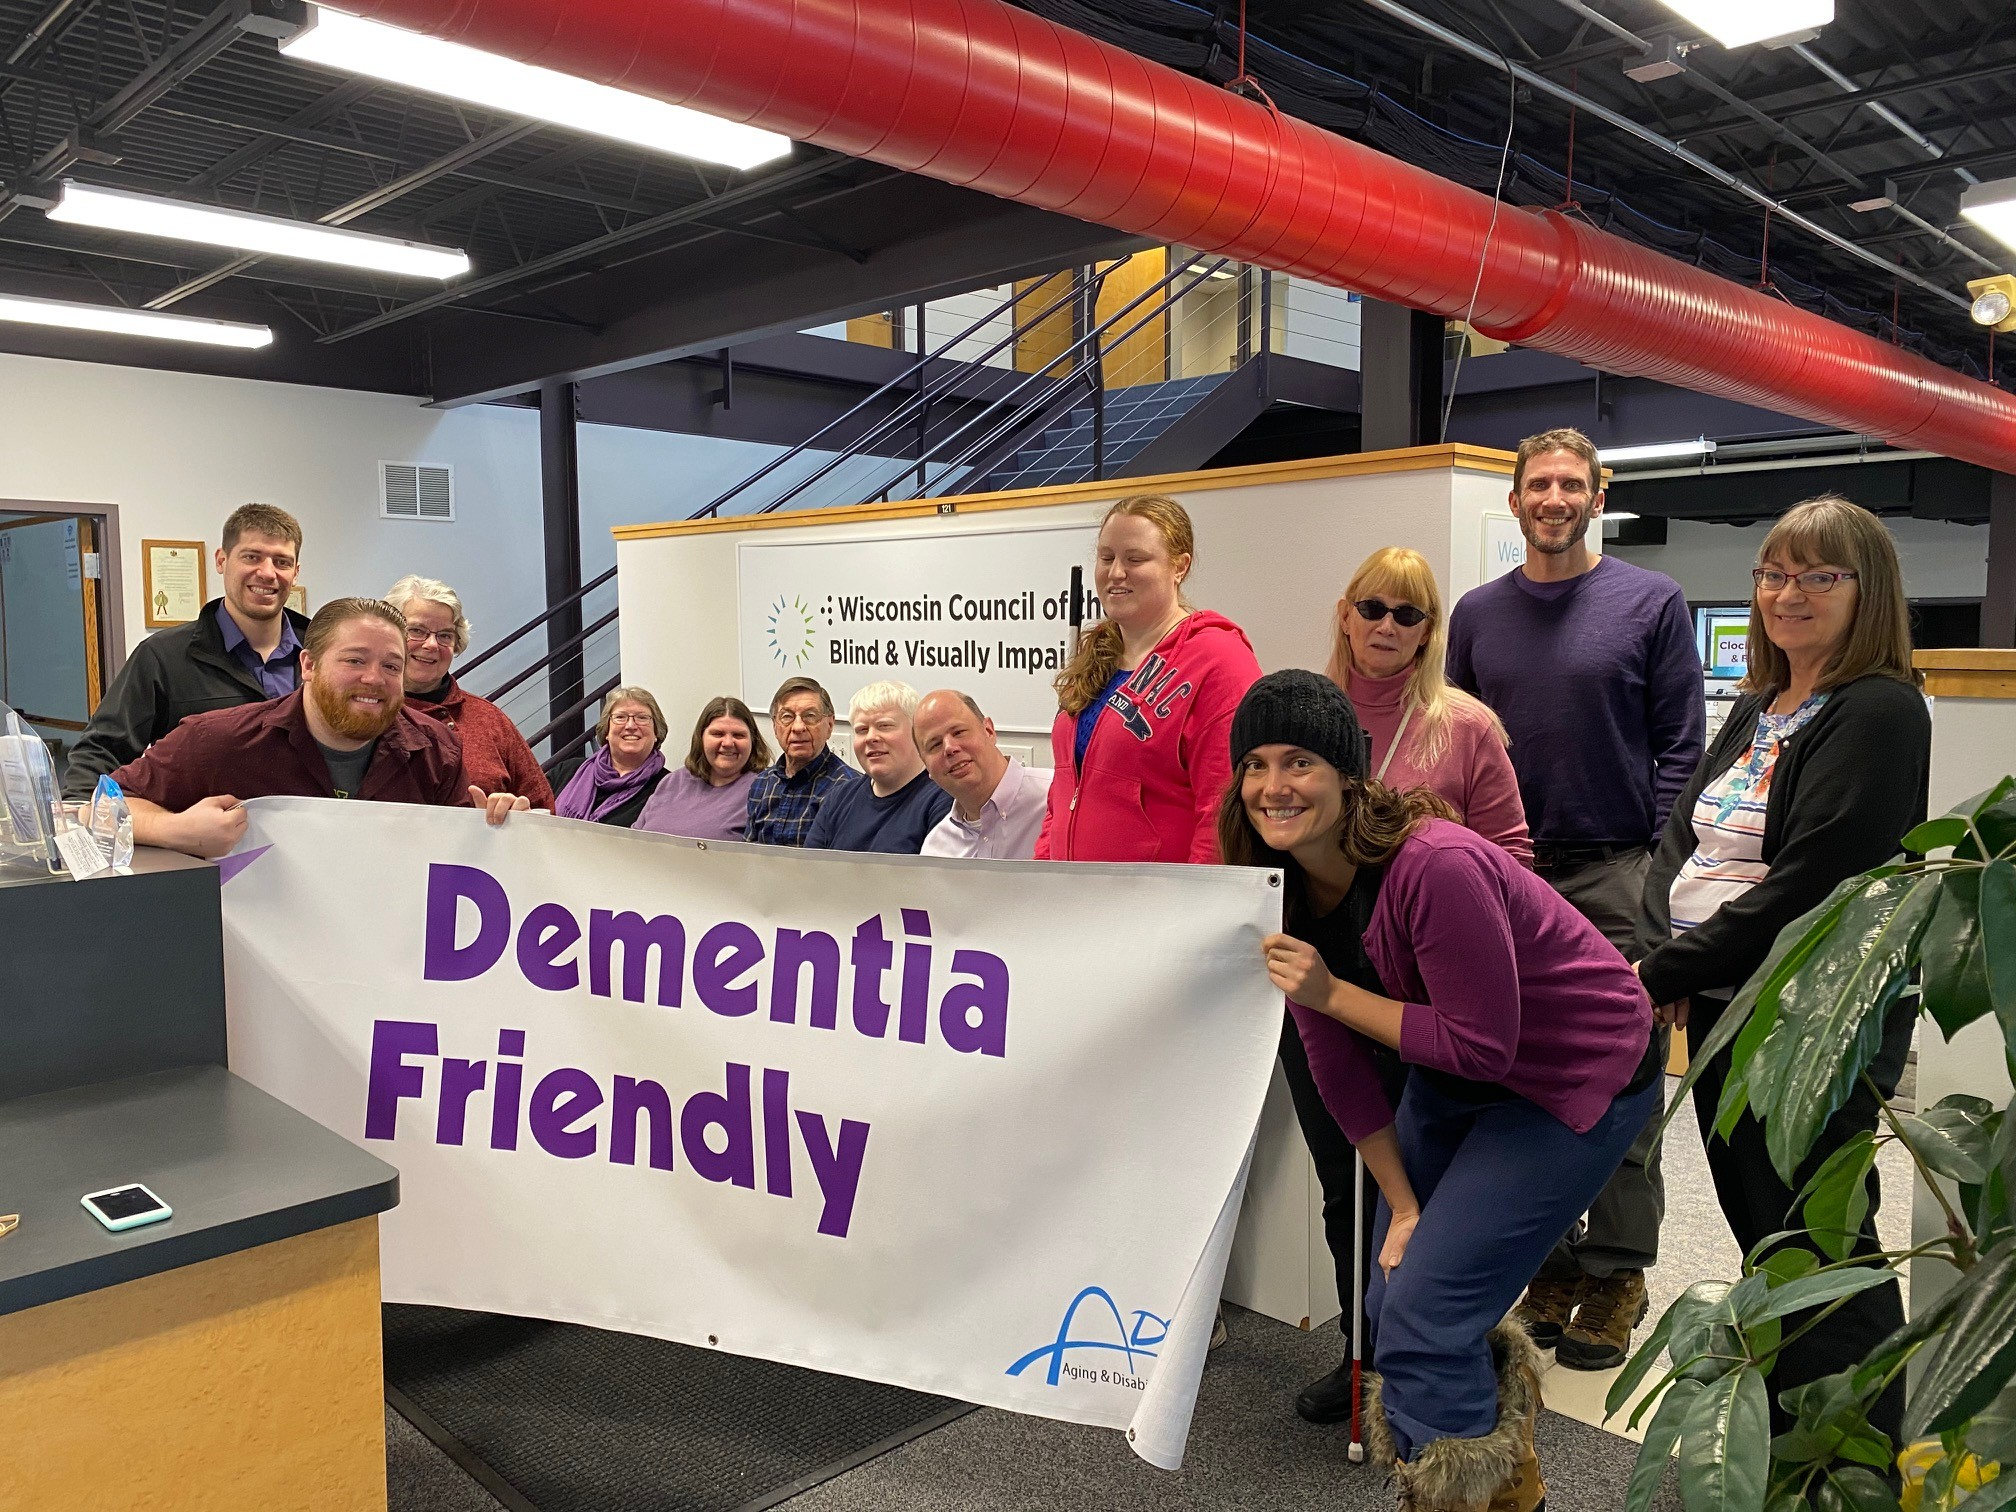 13 people standing in front of the WCBVI logo holding a Dementia Friendly banner.